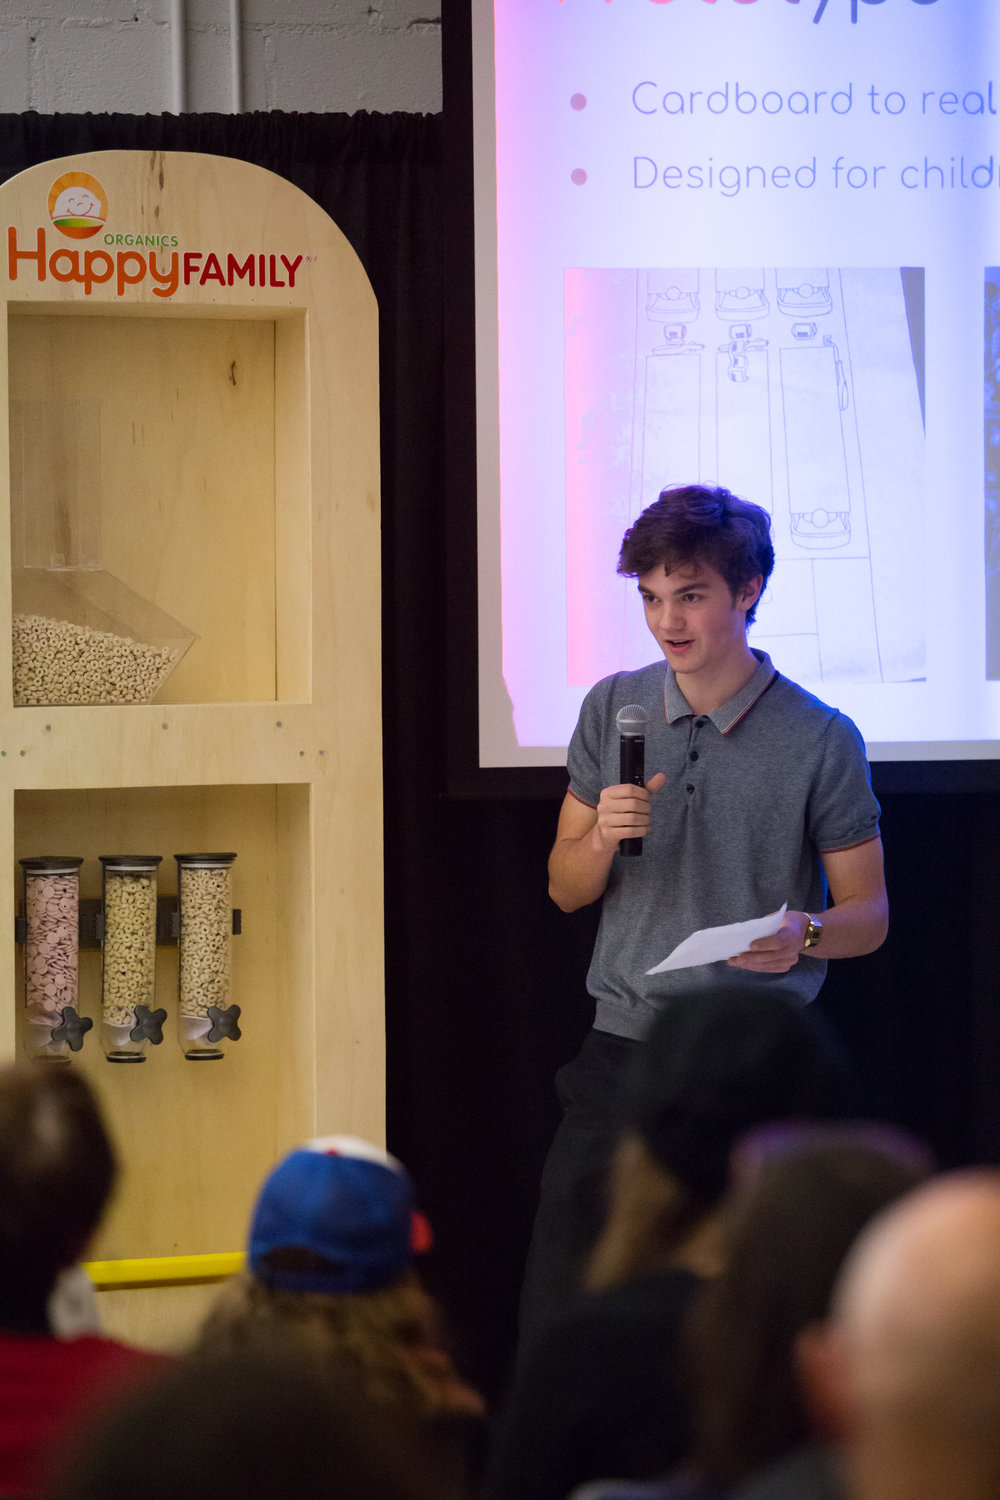 A One Stone student presents the prototype for Happy Family Organics bulk food dispensers.